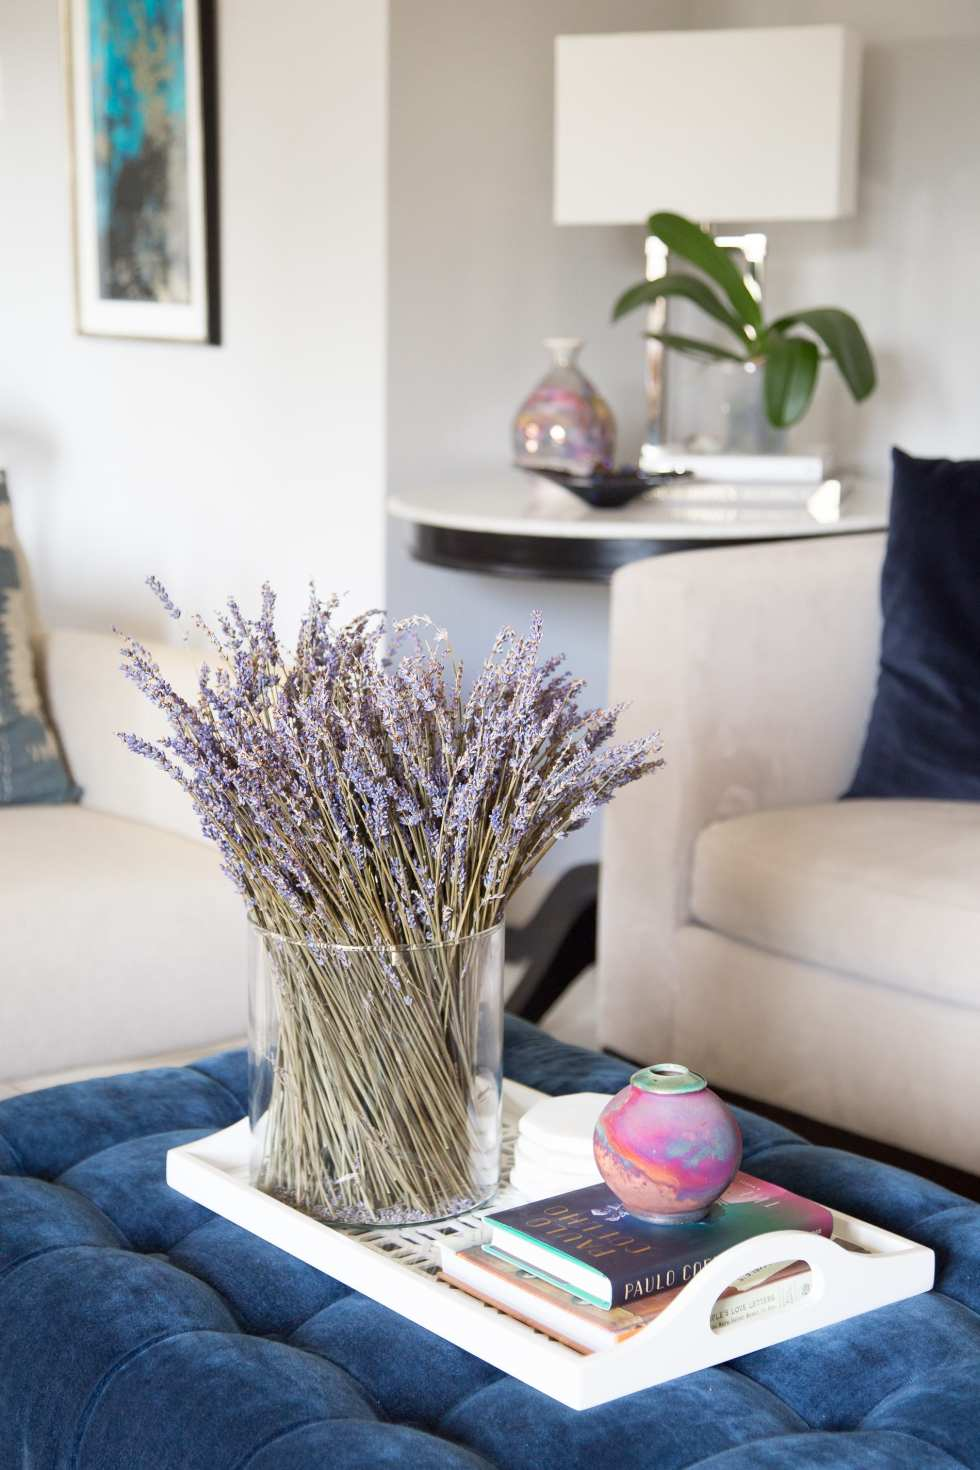 20 Purple Accessories For Your Home | THE DESIGN SOUK | www.thedesignsouk.com